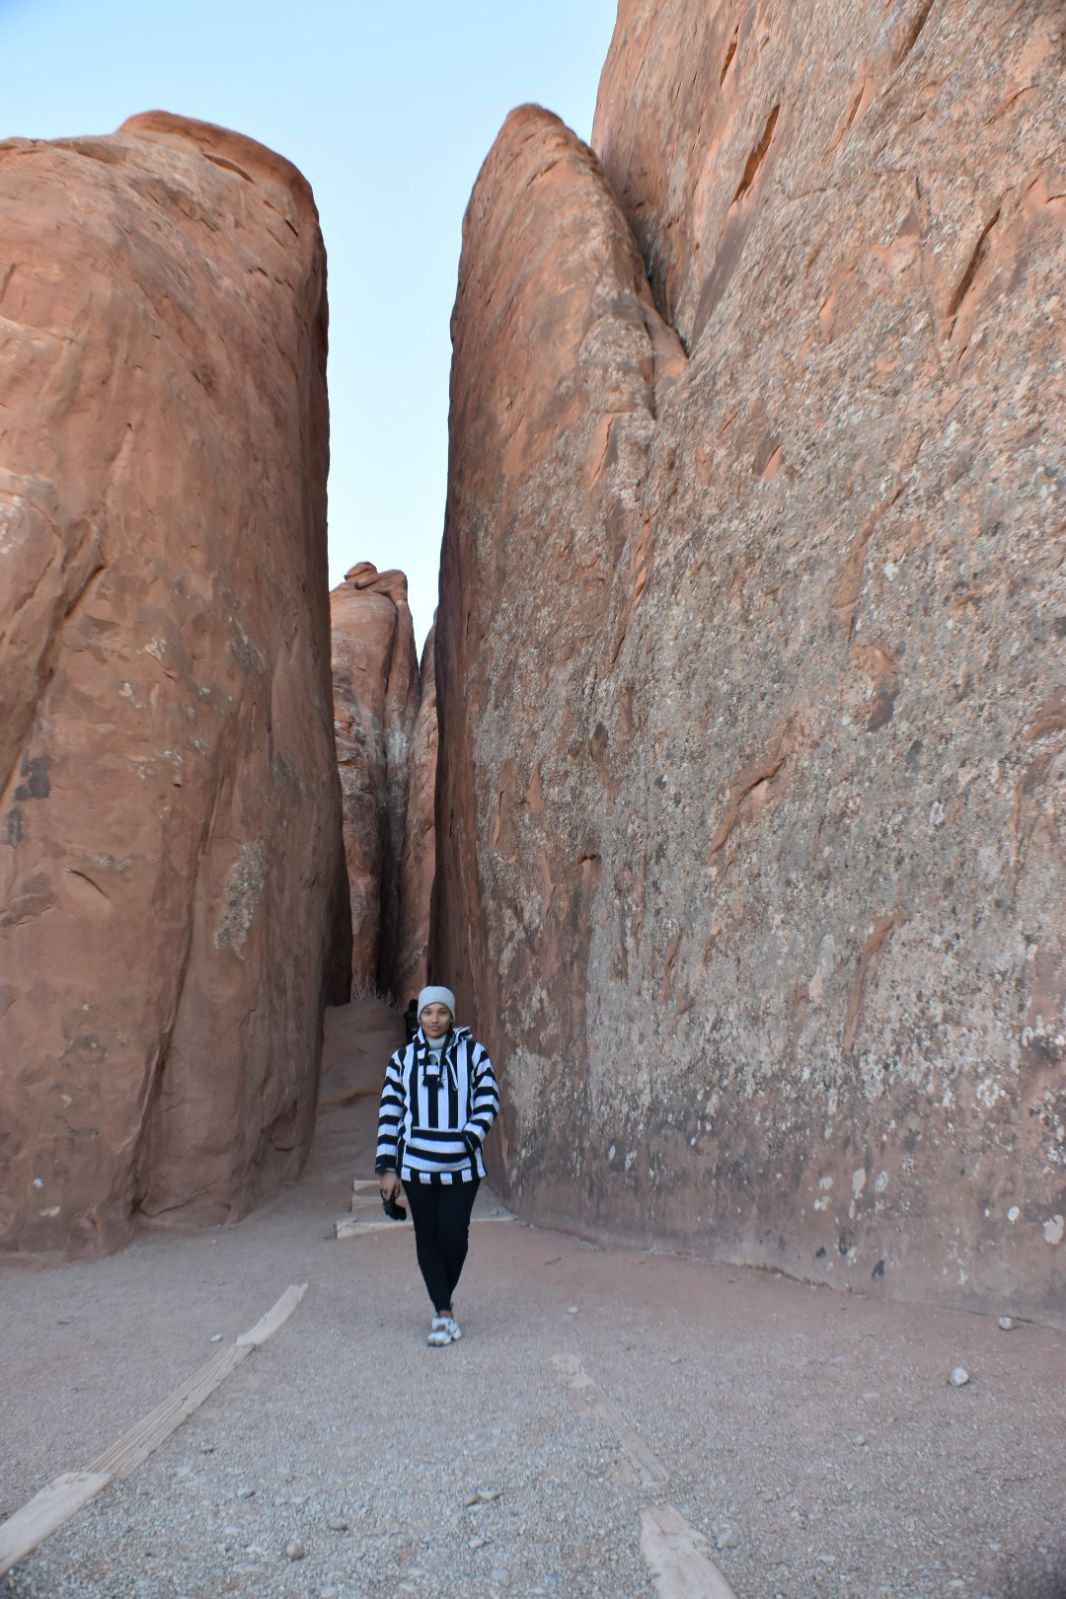 Illustrated by Sade - Slot Canyon in Arches National Park